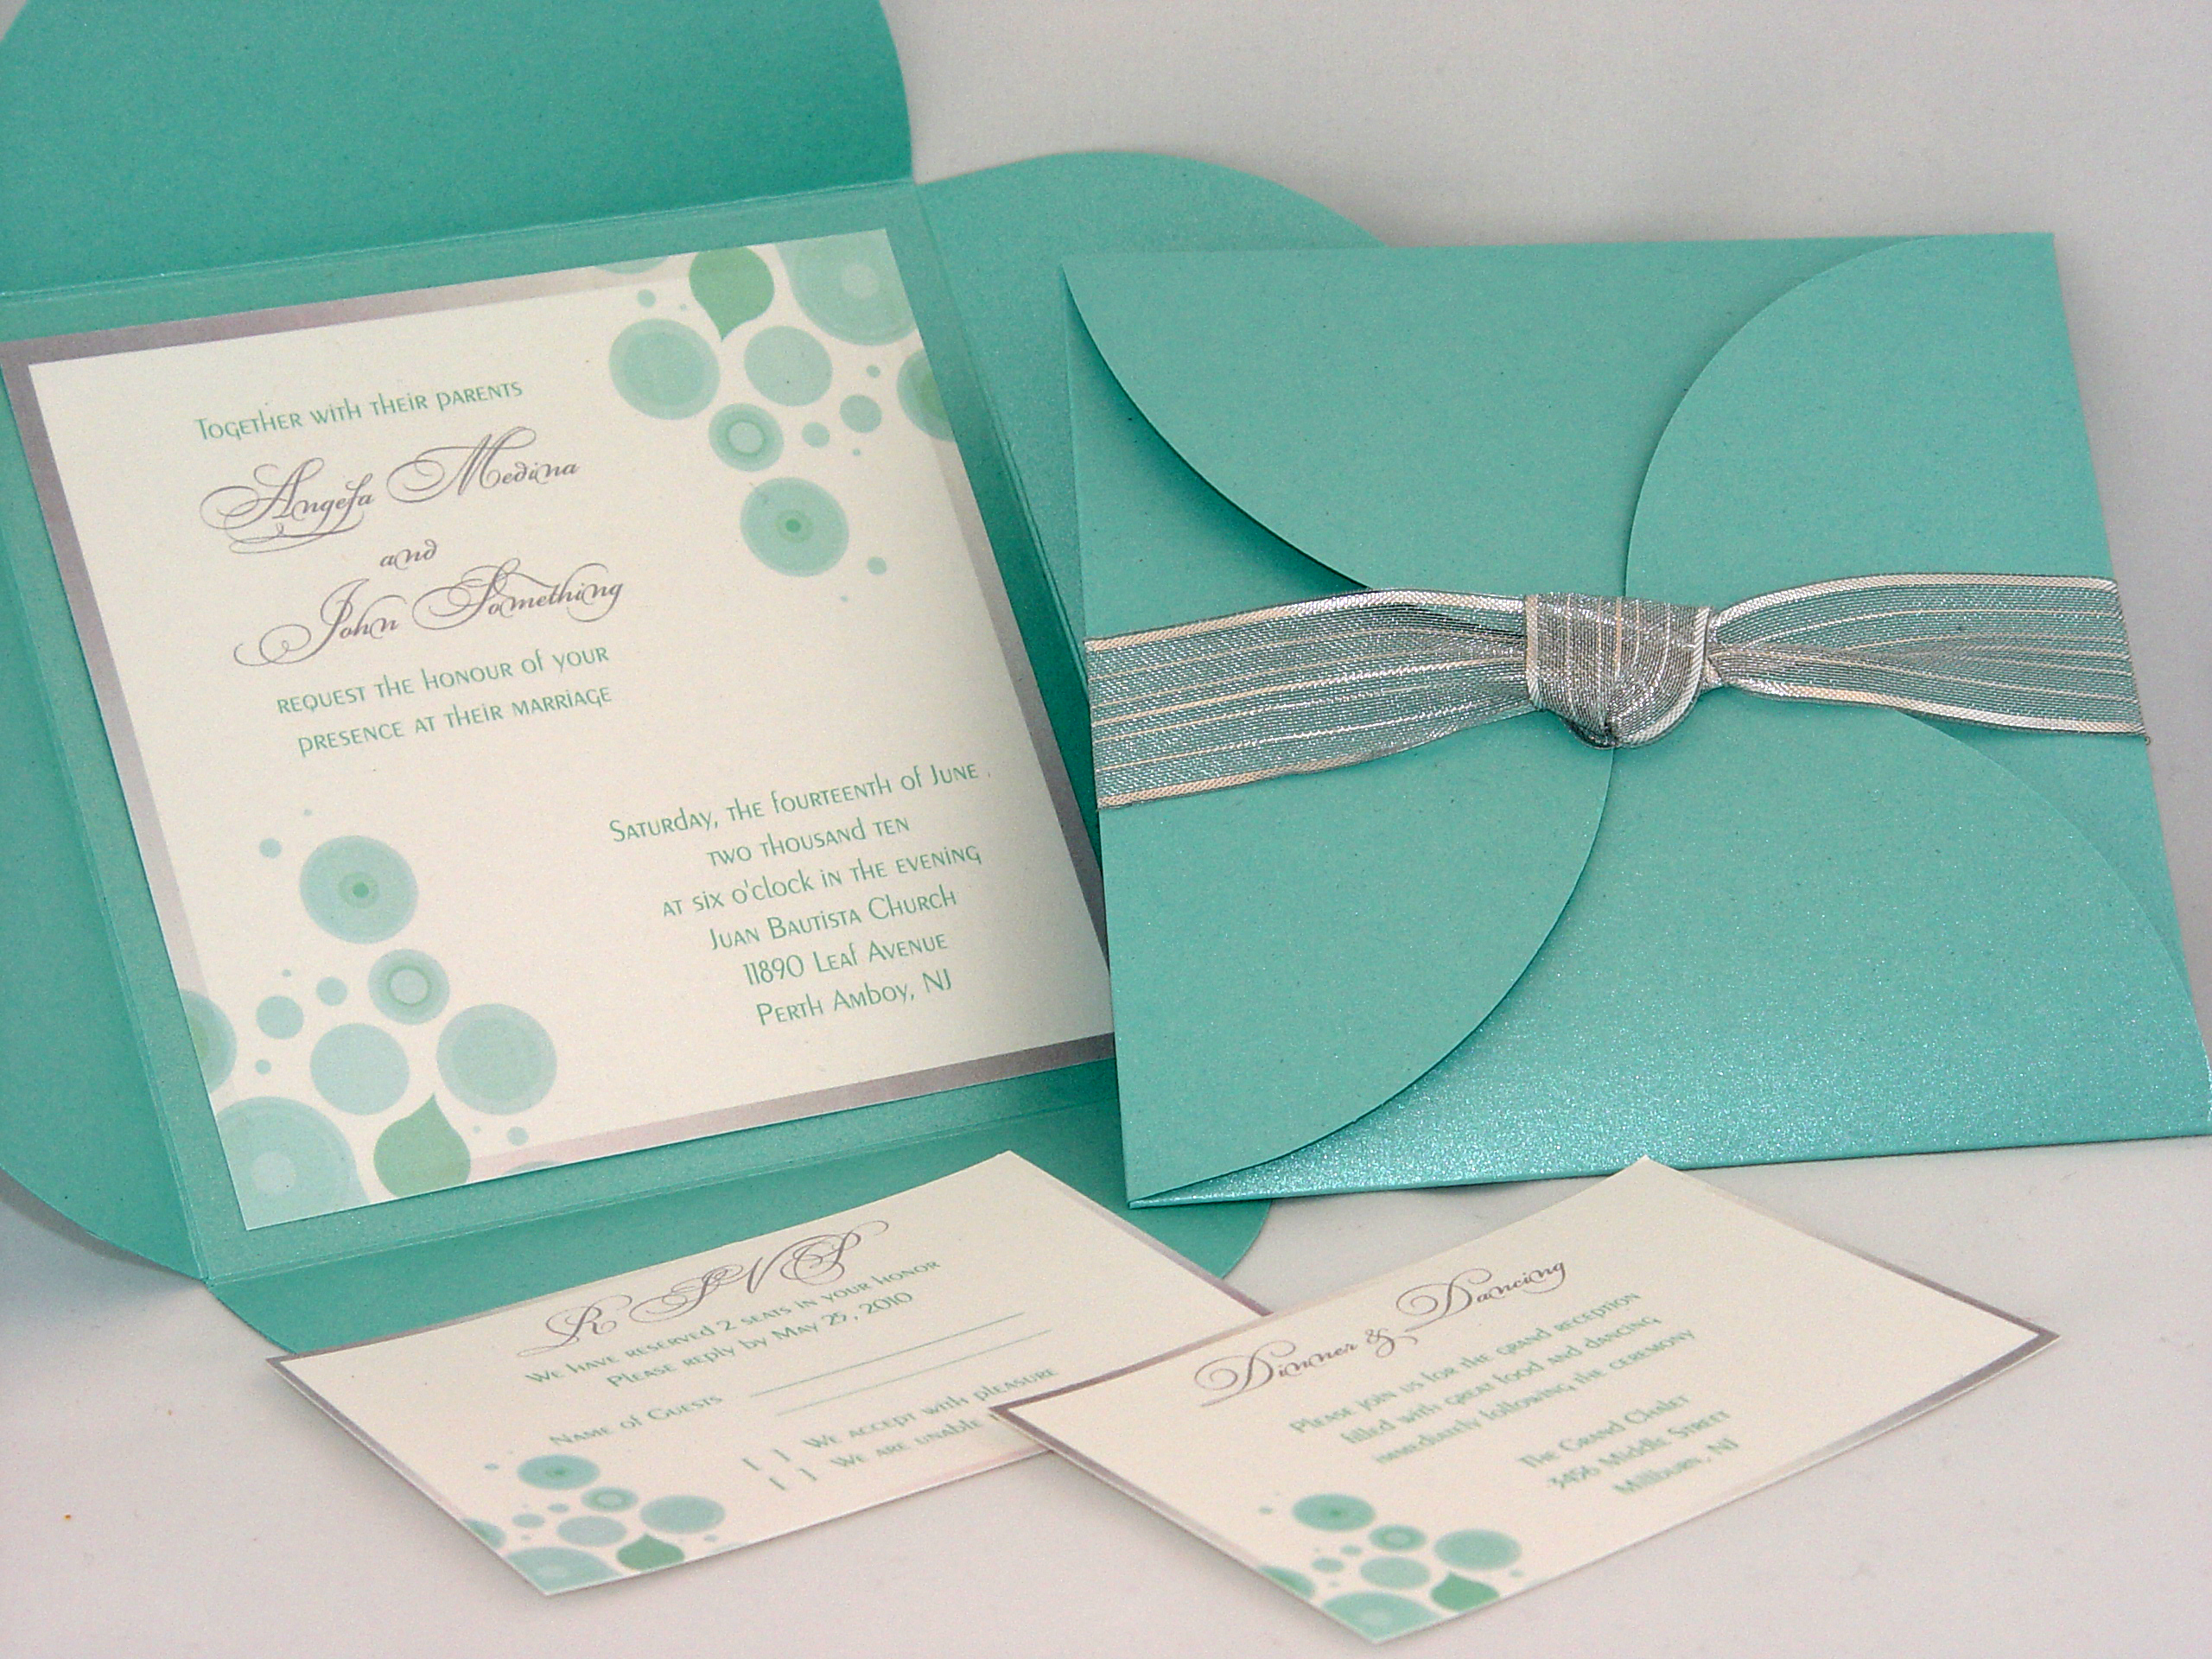 Stationery, Modern Wedding Invitations, Invitations, Sdezigns weddings